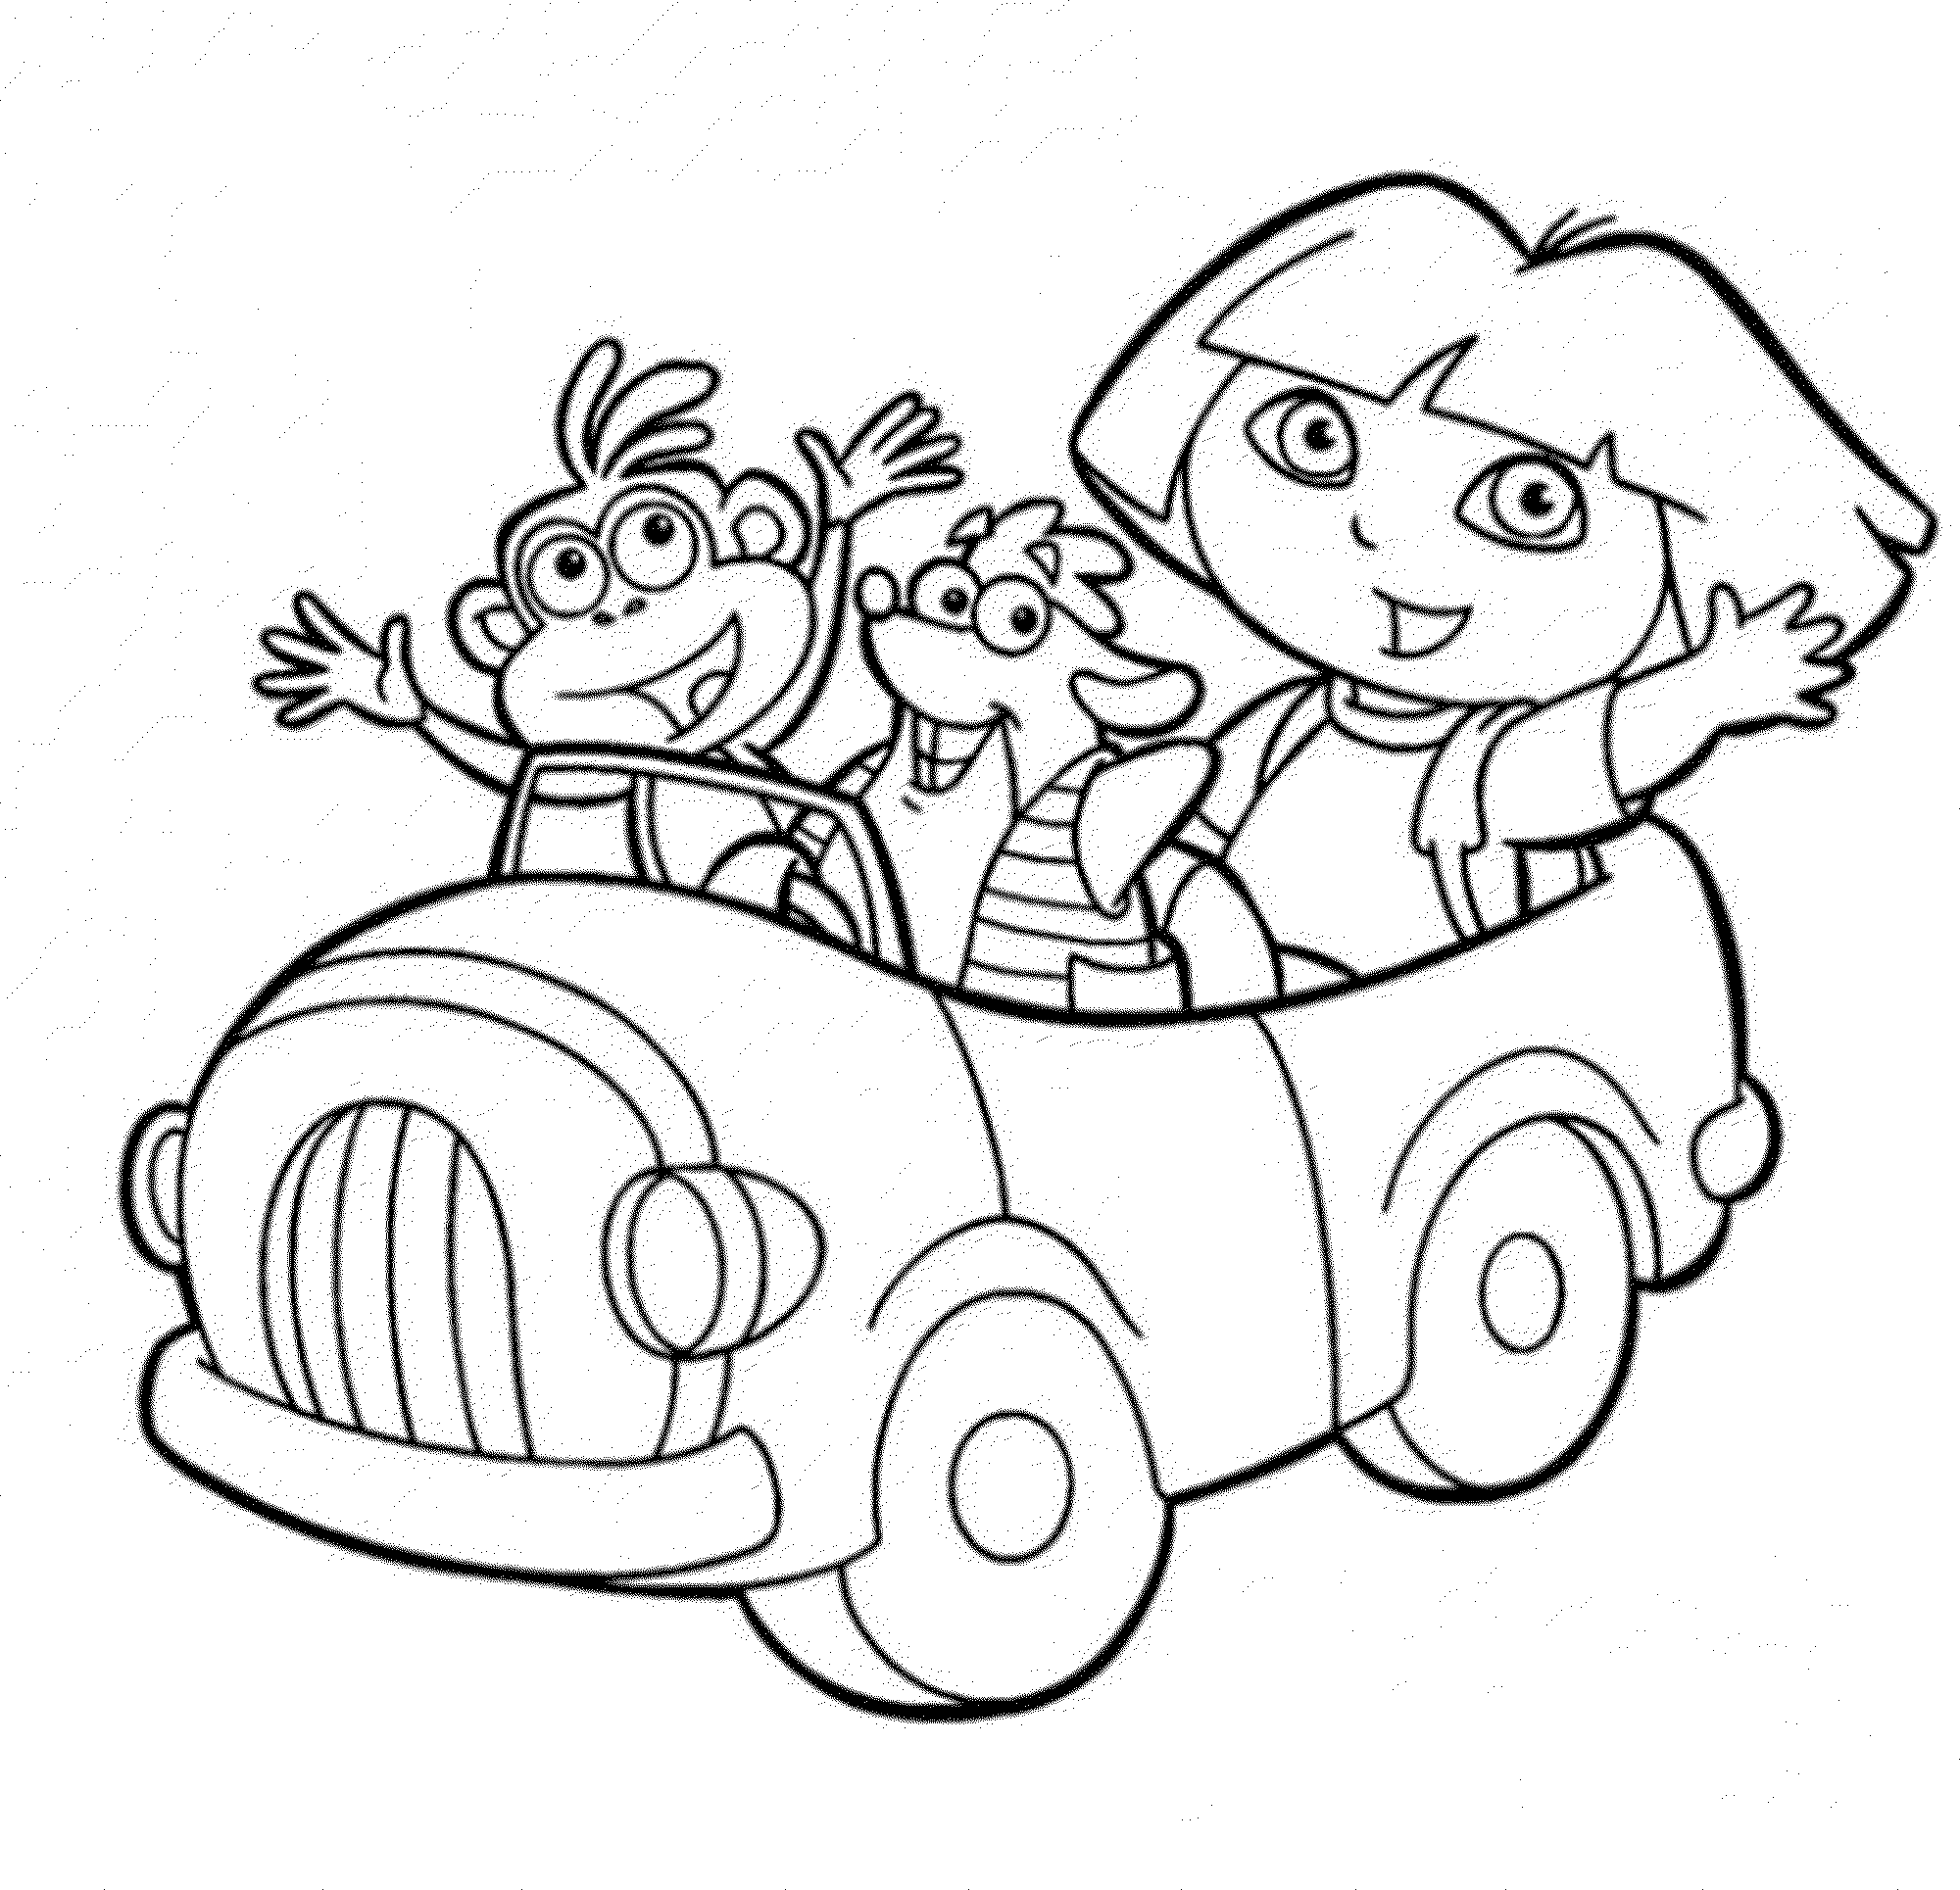 2000x1929 Dora The Explorer Coloring Pages Print Car Printable Kids